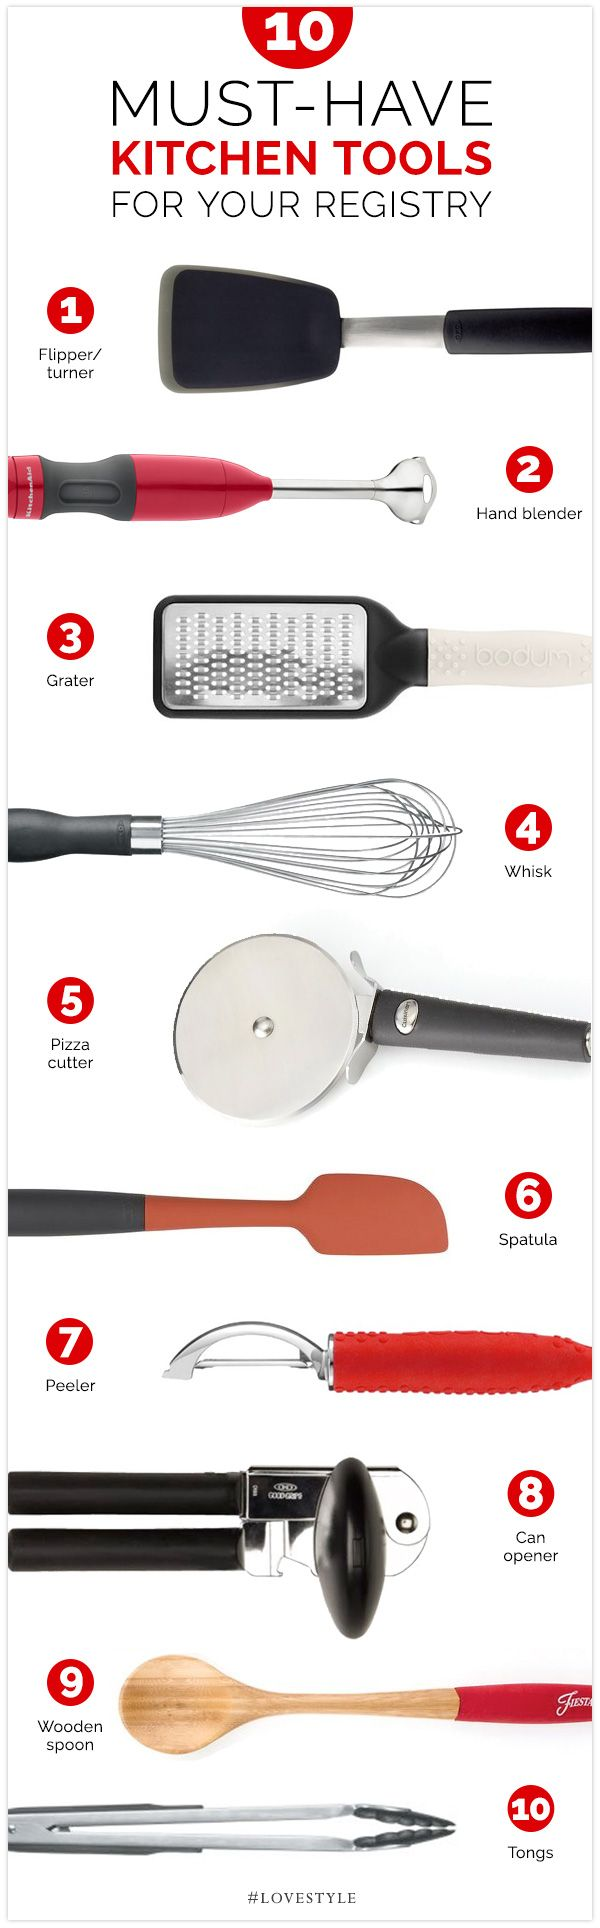 10 Must-Have Kitchen Tools for Your Registry | Weddings, Kitchens ...